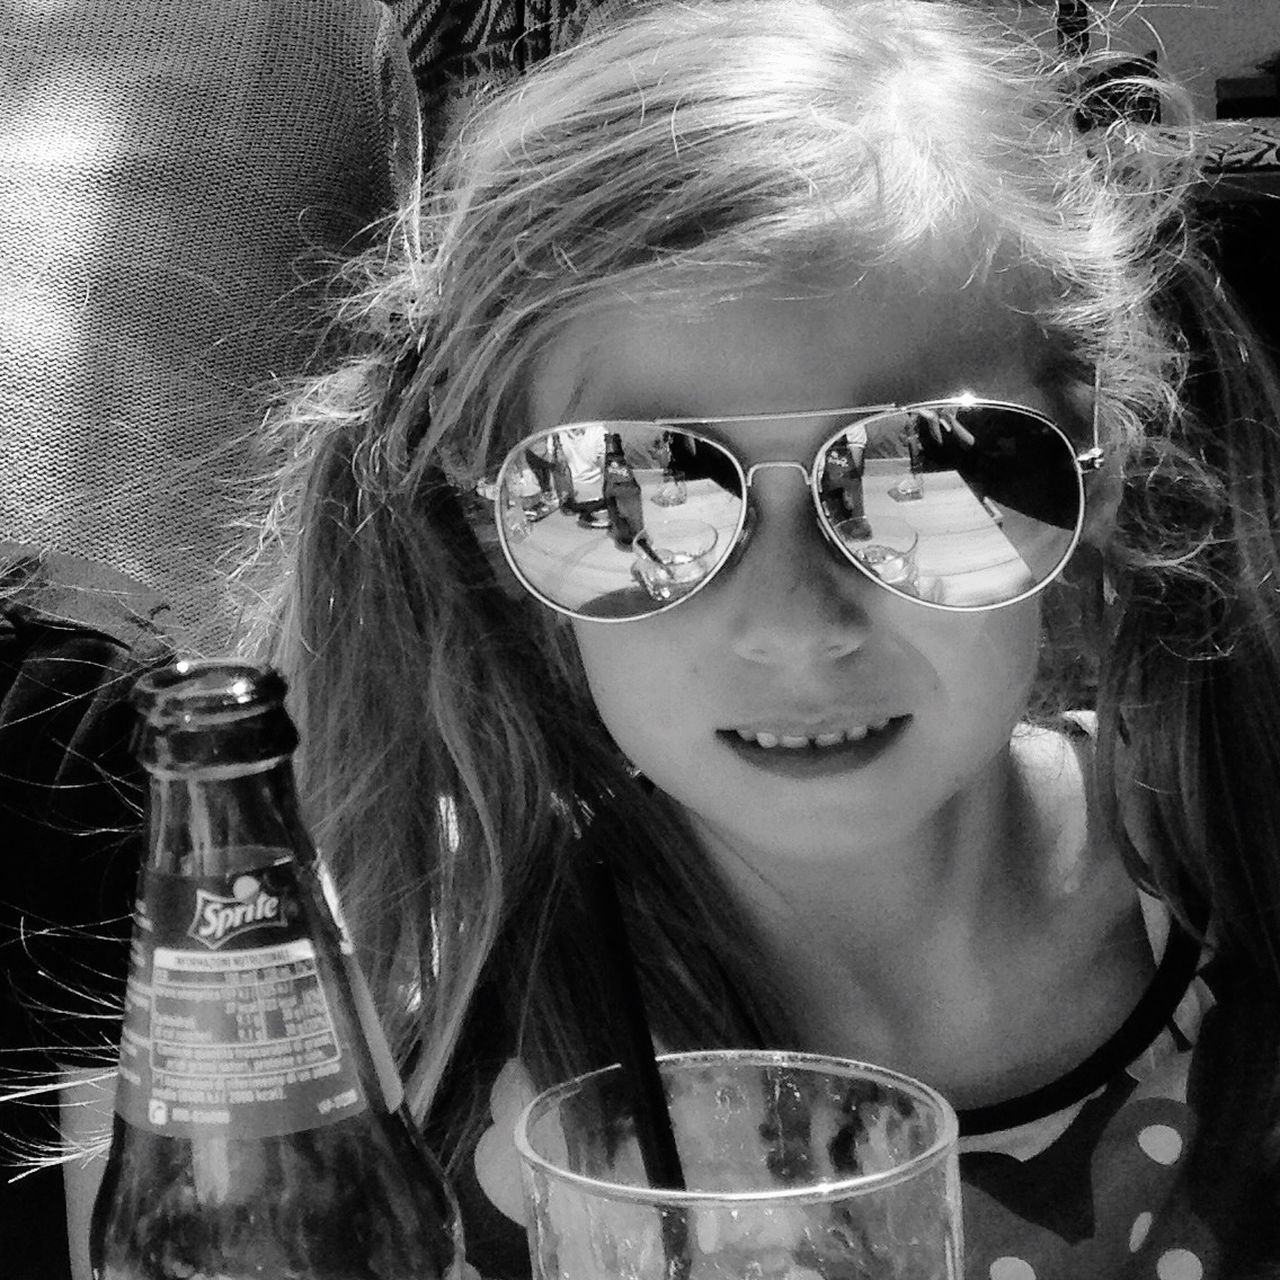 sunglasses, drinking glass, one person, childhood, headshot, real people, looking at camera, portrait, girls, smiling, close-up, day, people